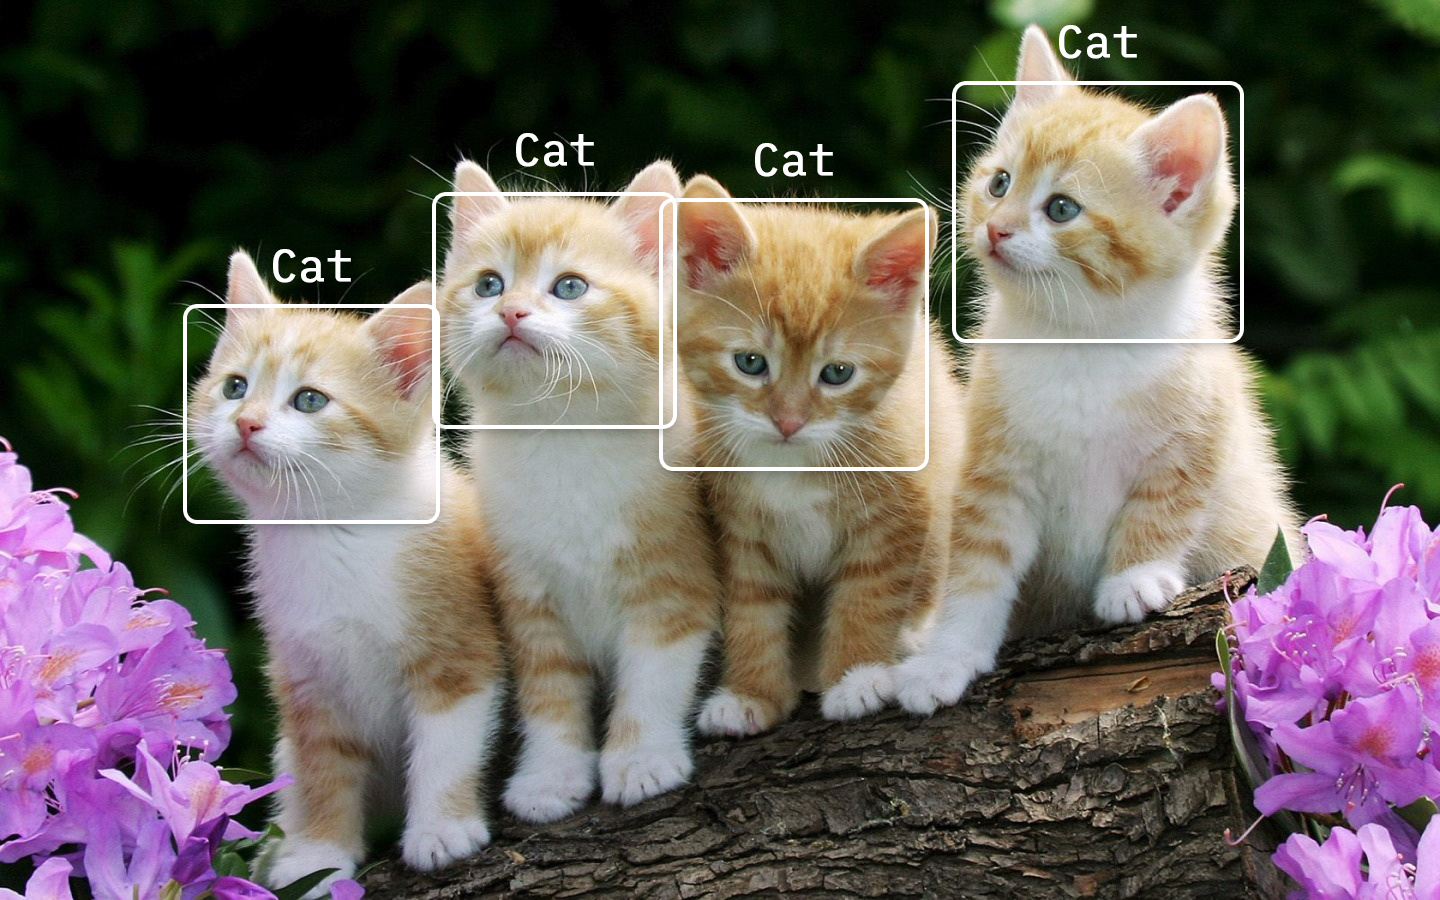 /tensorflow-js-real-time-object-detection-in-10-lines-of-code-baf15dfb95b2 feature image